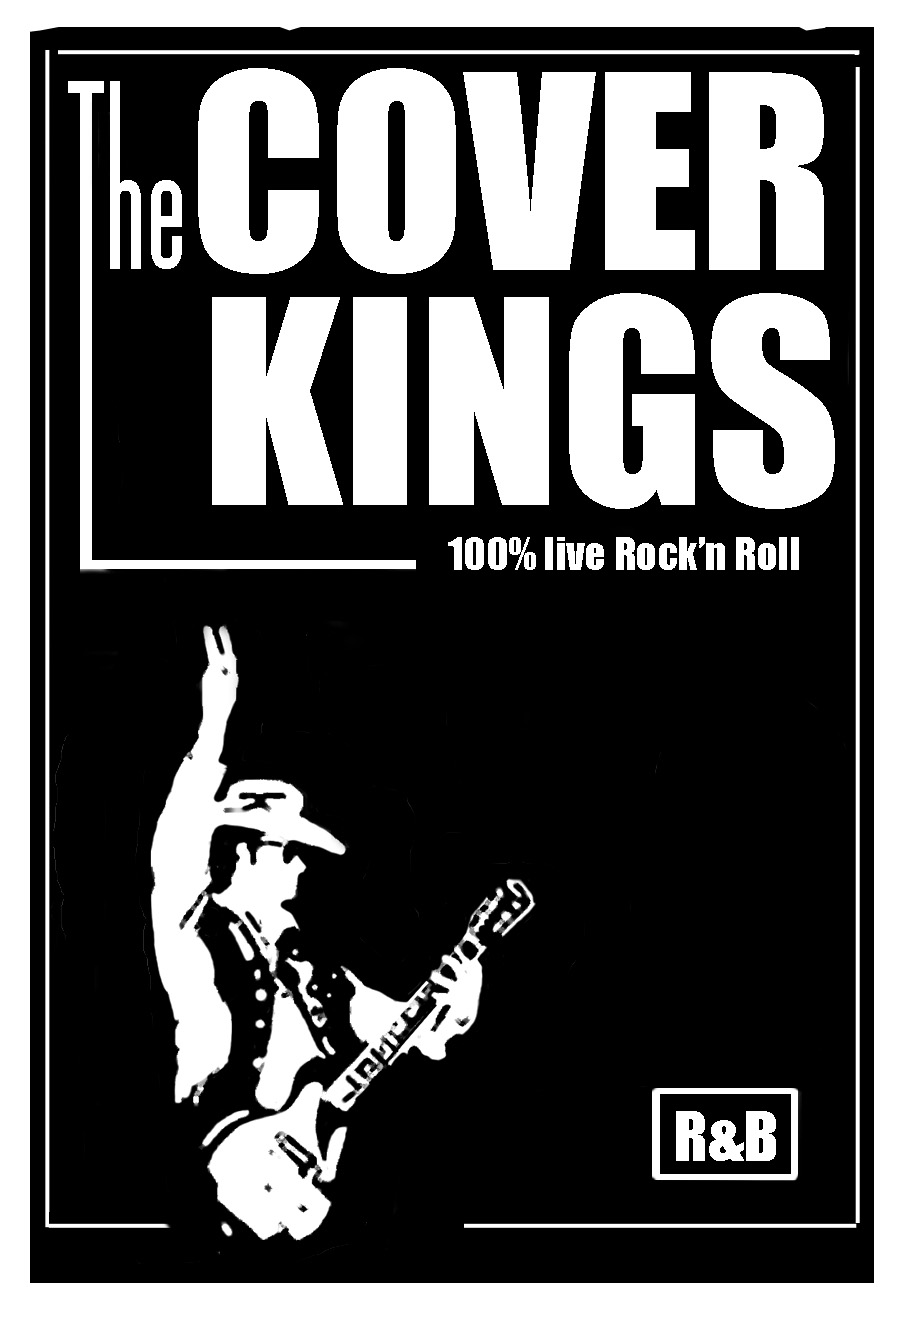 coverkings